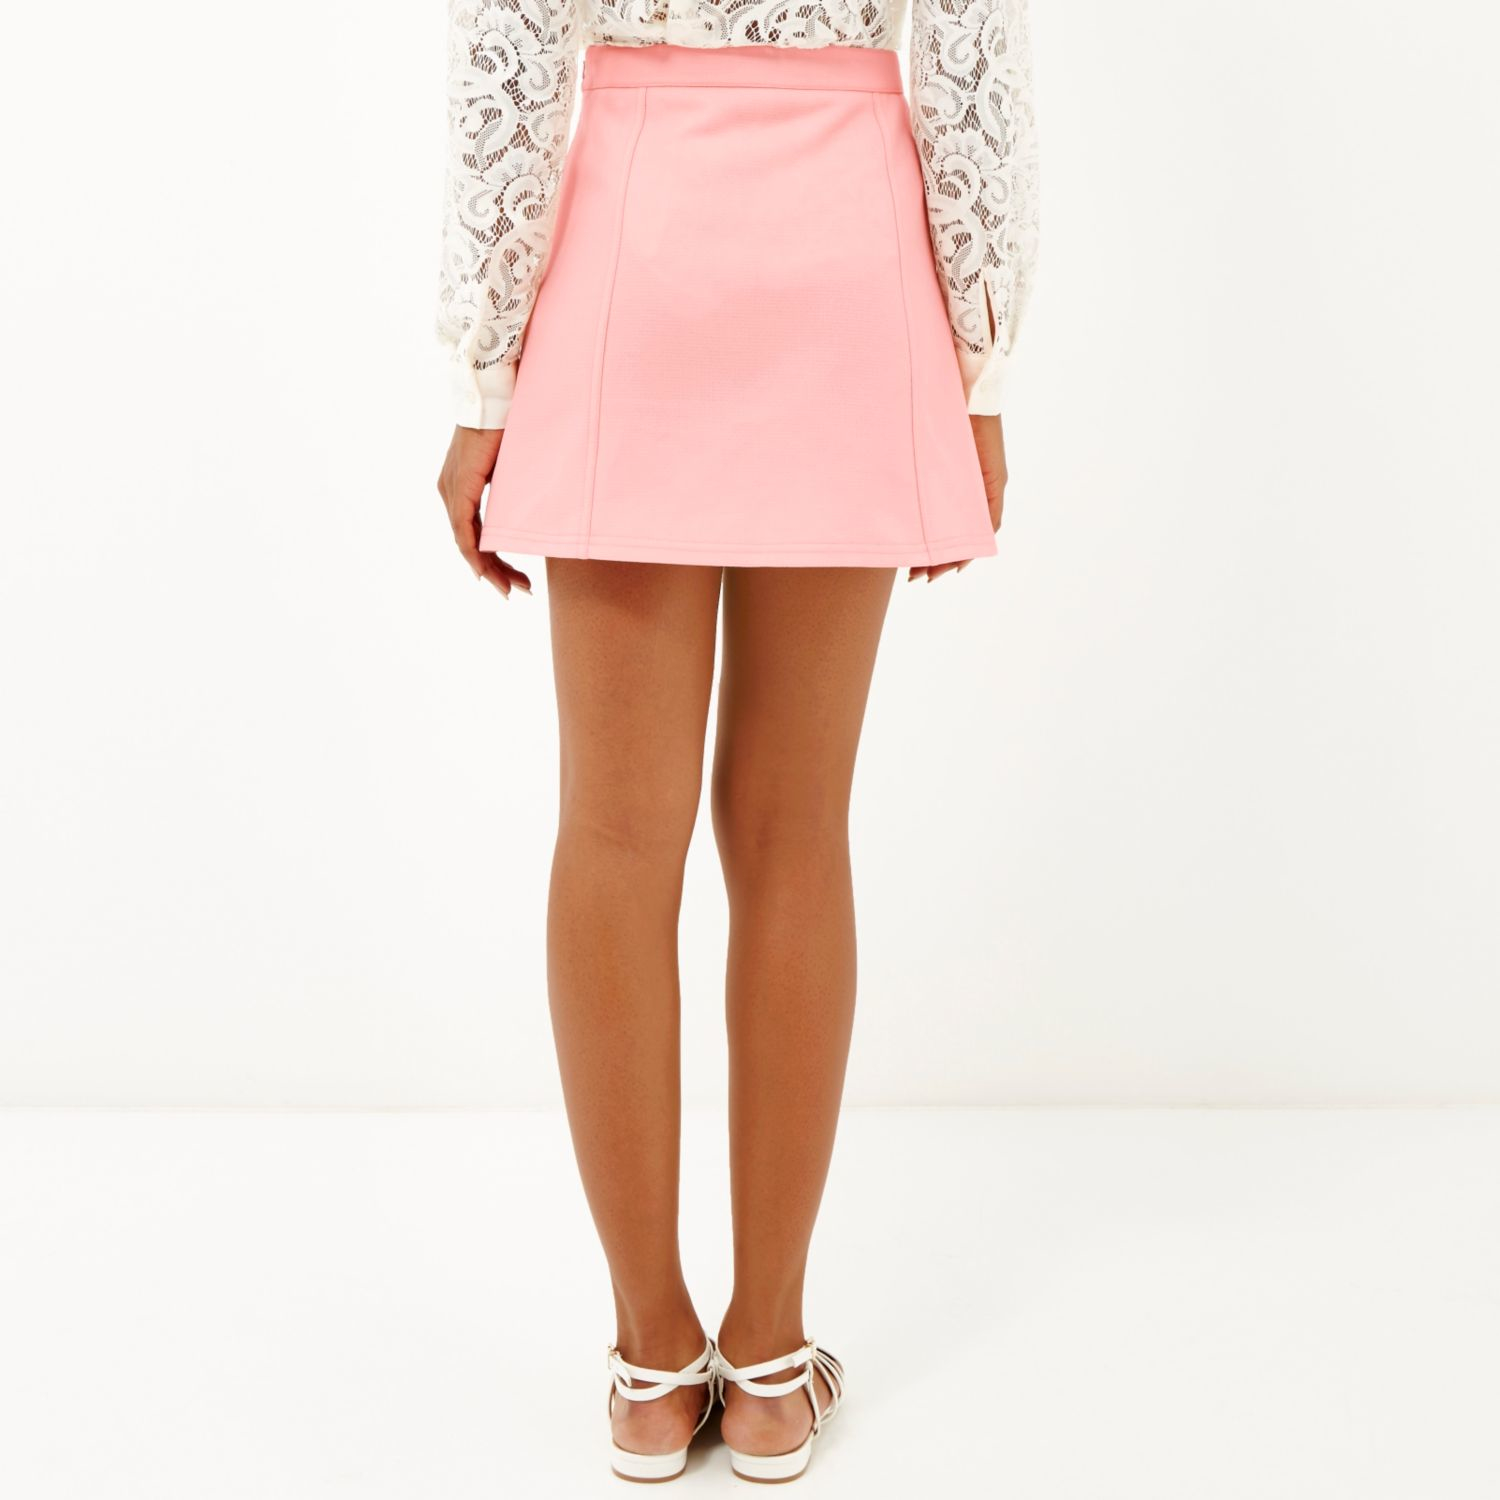 River island Light Pink Button-up A-line Mini Skirt in Pink | Lyst